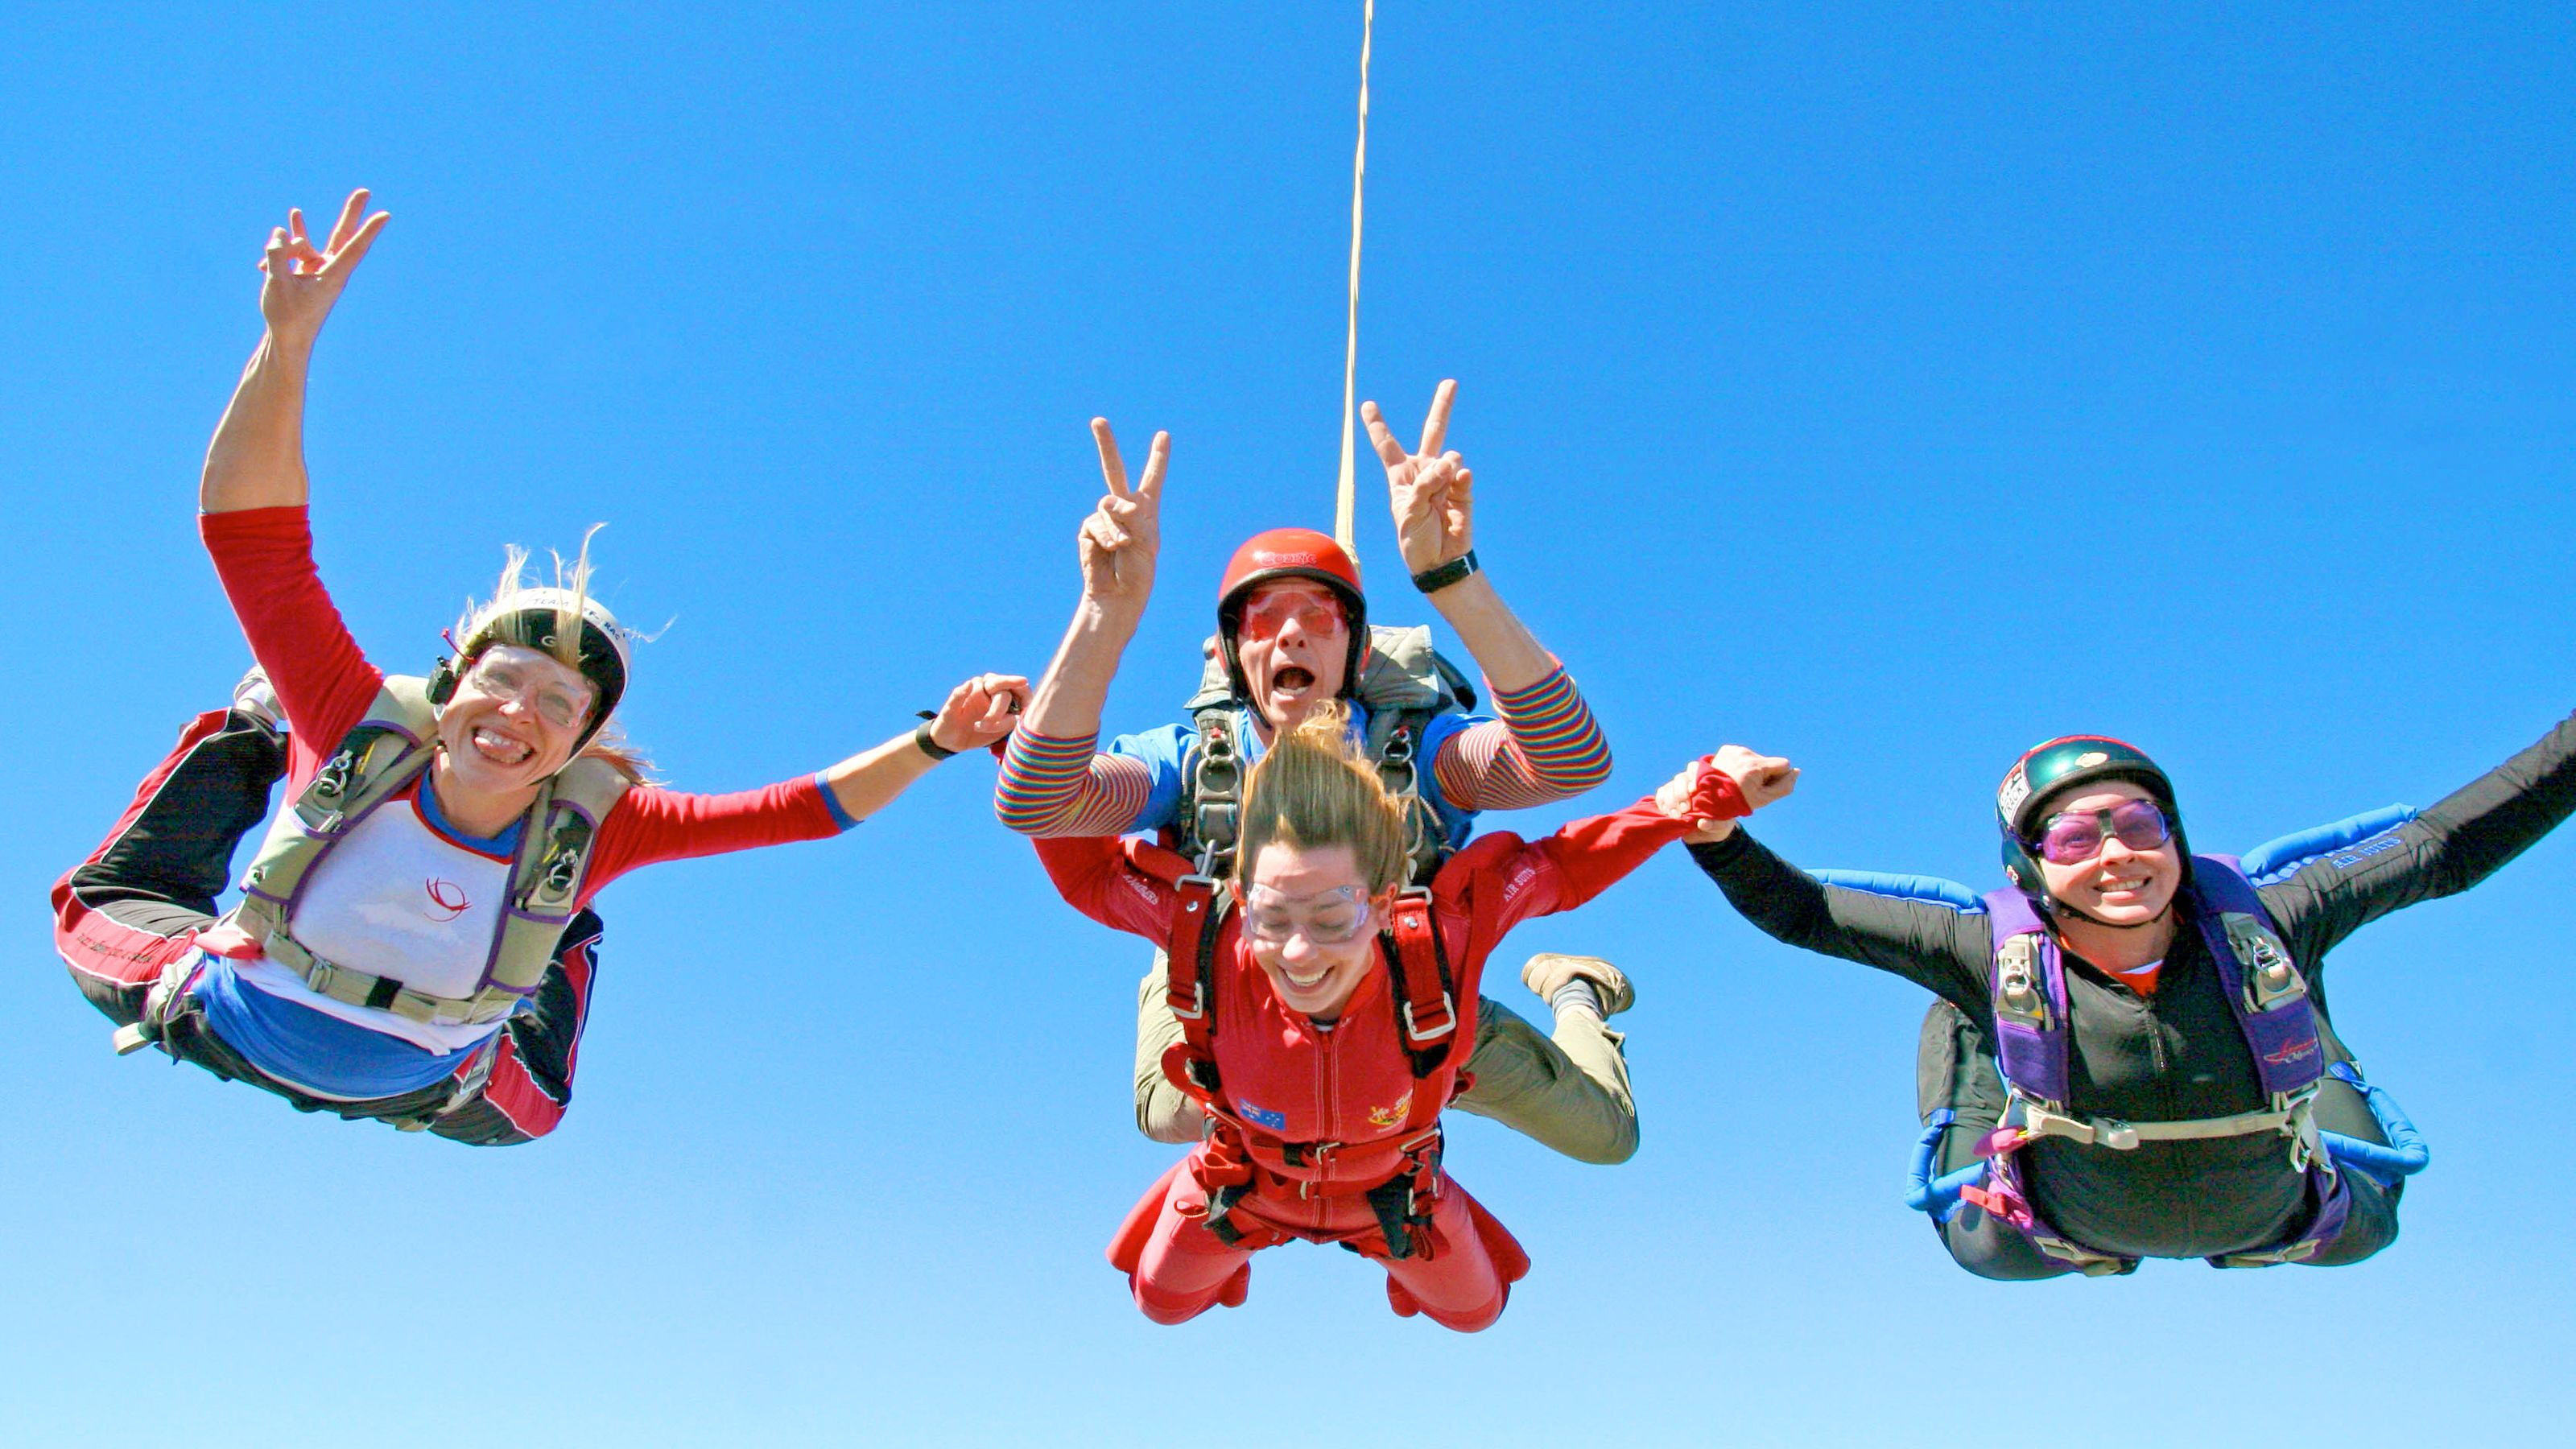 Skydivers in a group free falling over Sunshine Coast.